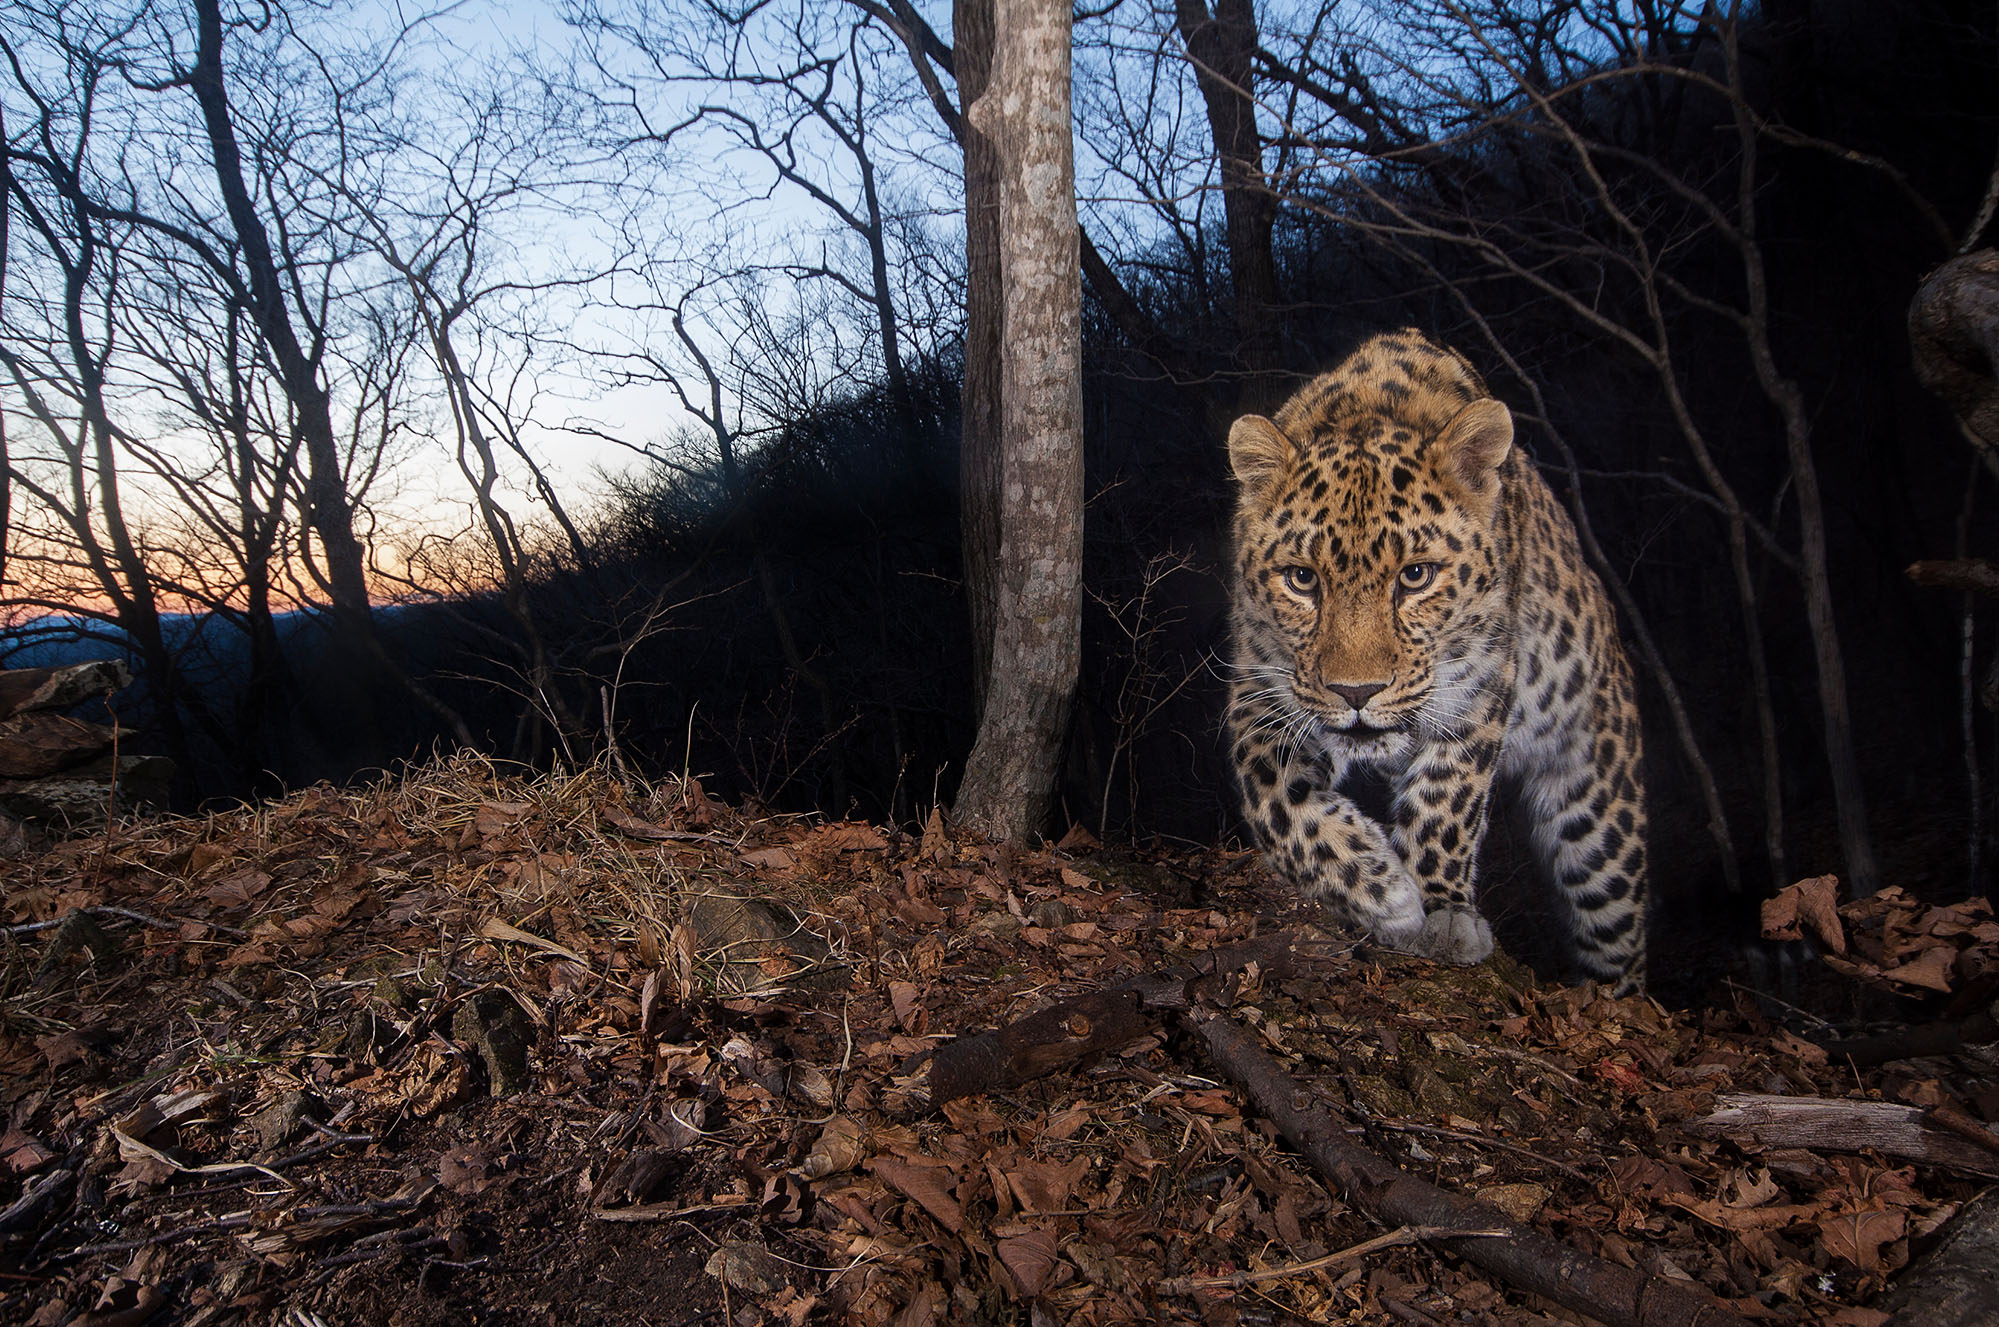 The Most Endangered Big Cat in the World